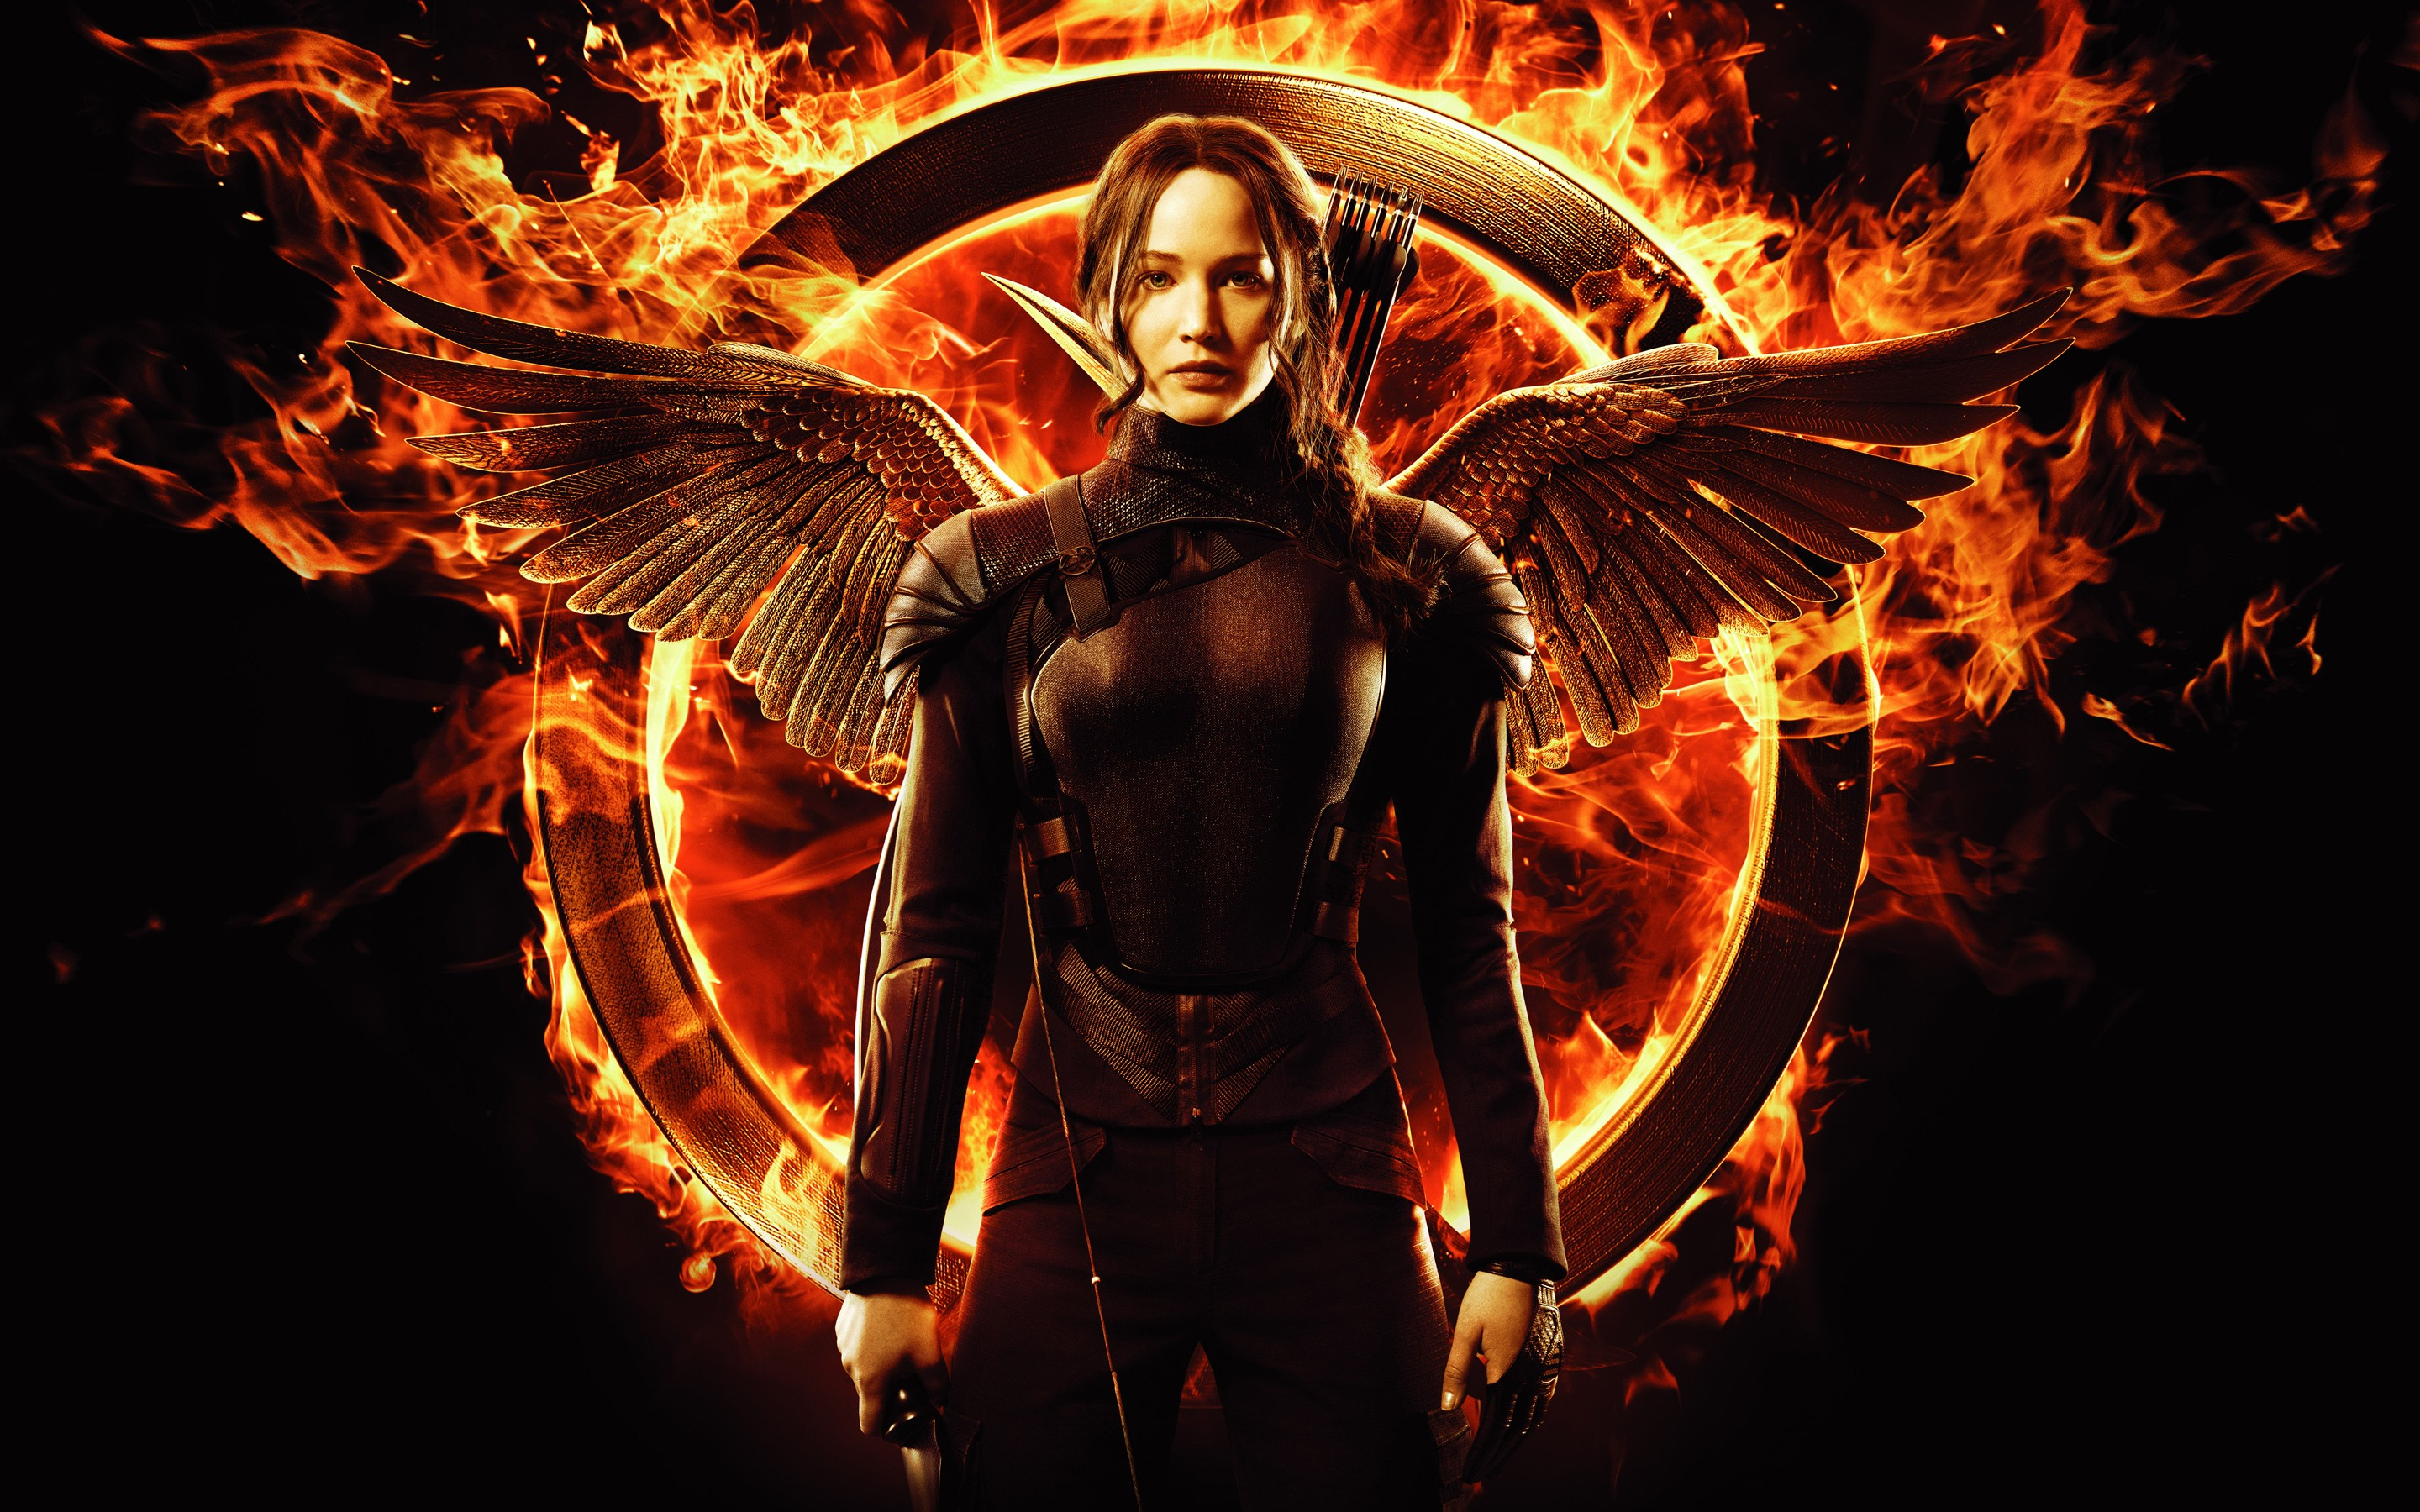 800x1280 Jennifer Lawrence In Hunger Games HD 4k